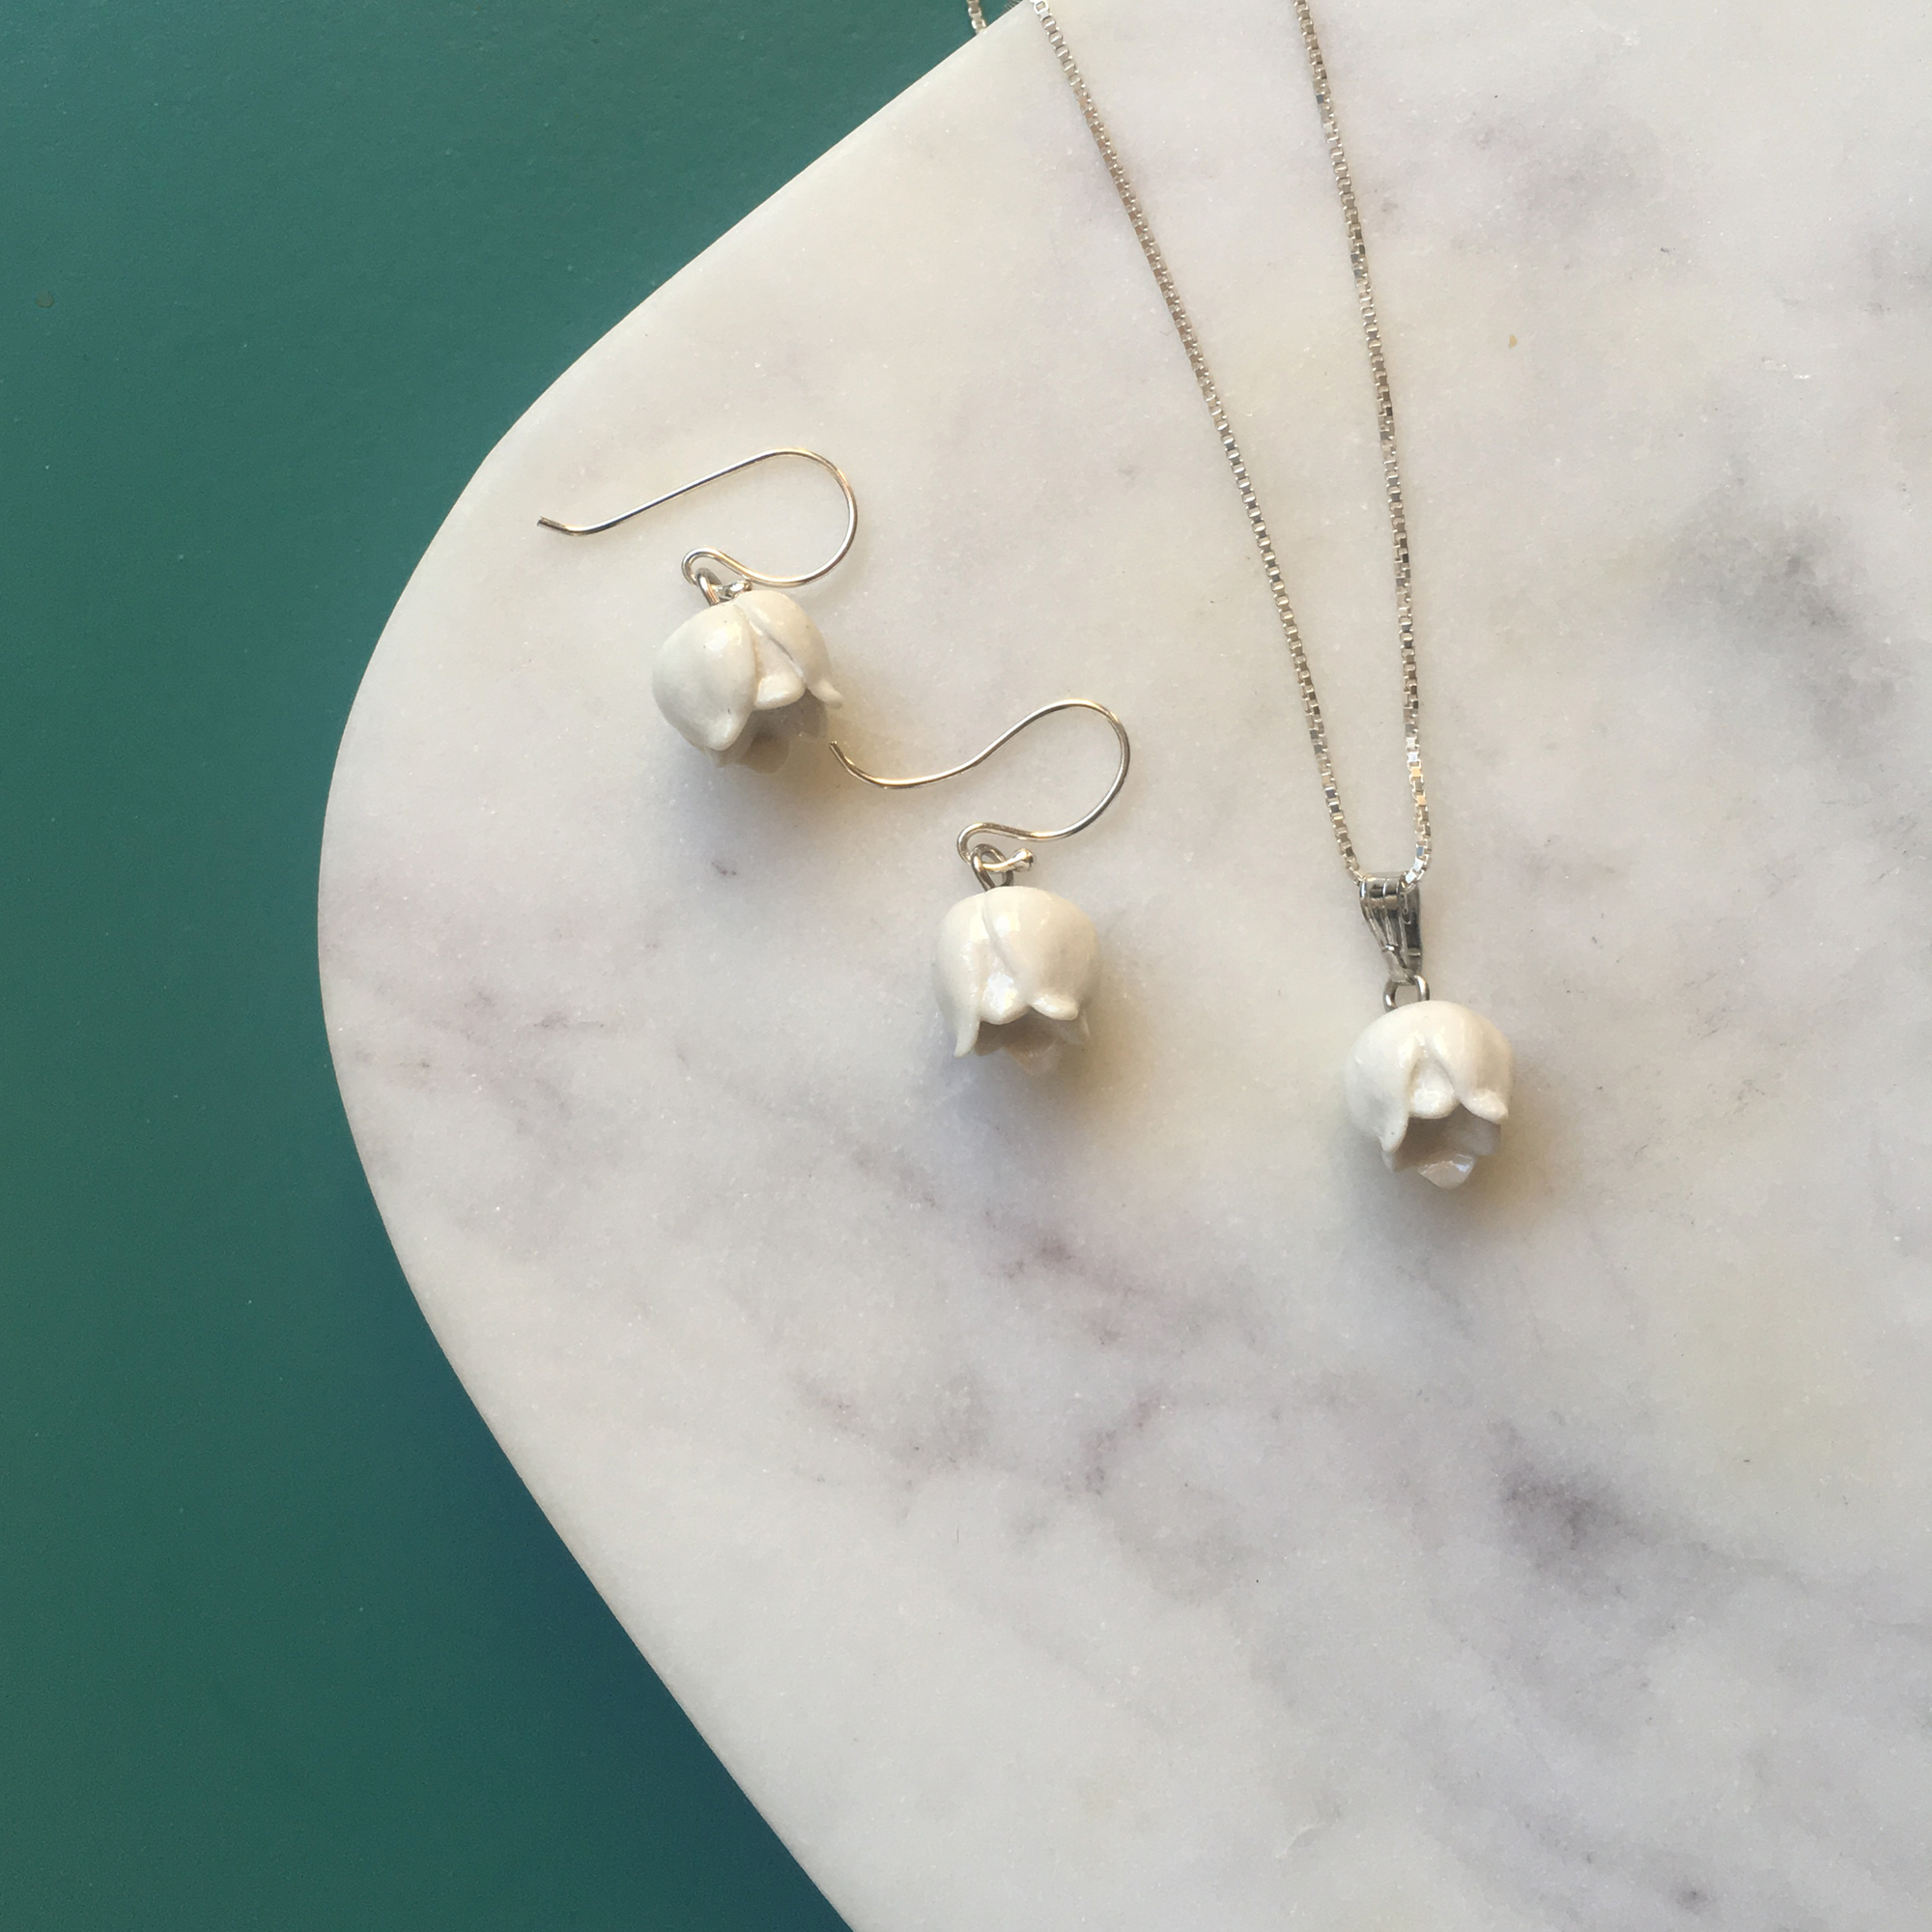 Lilly of the Valley necklace and earrings